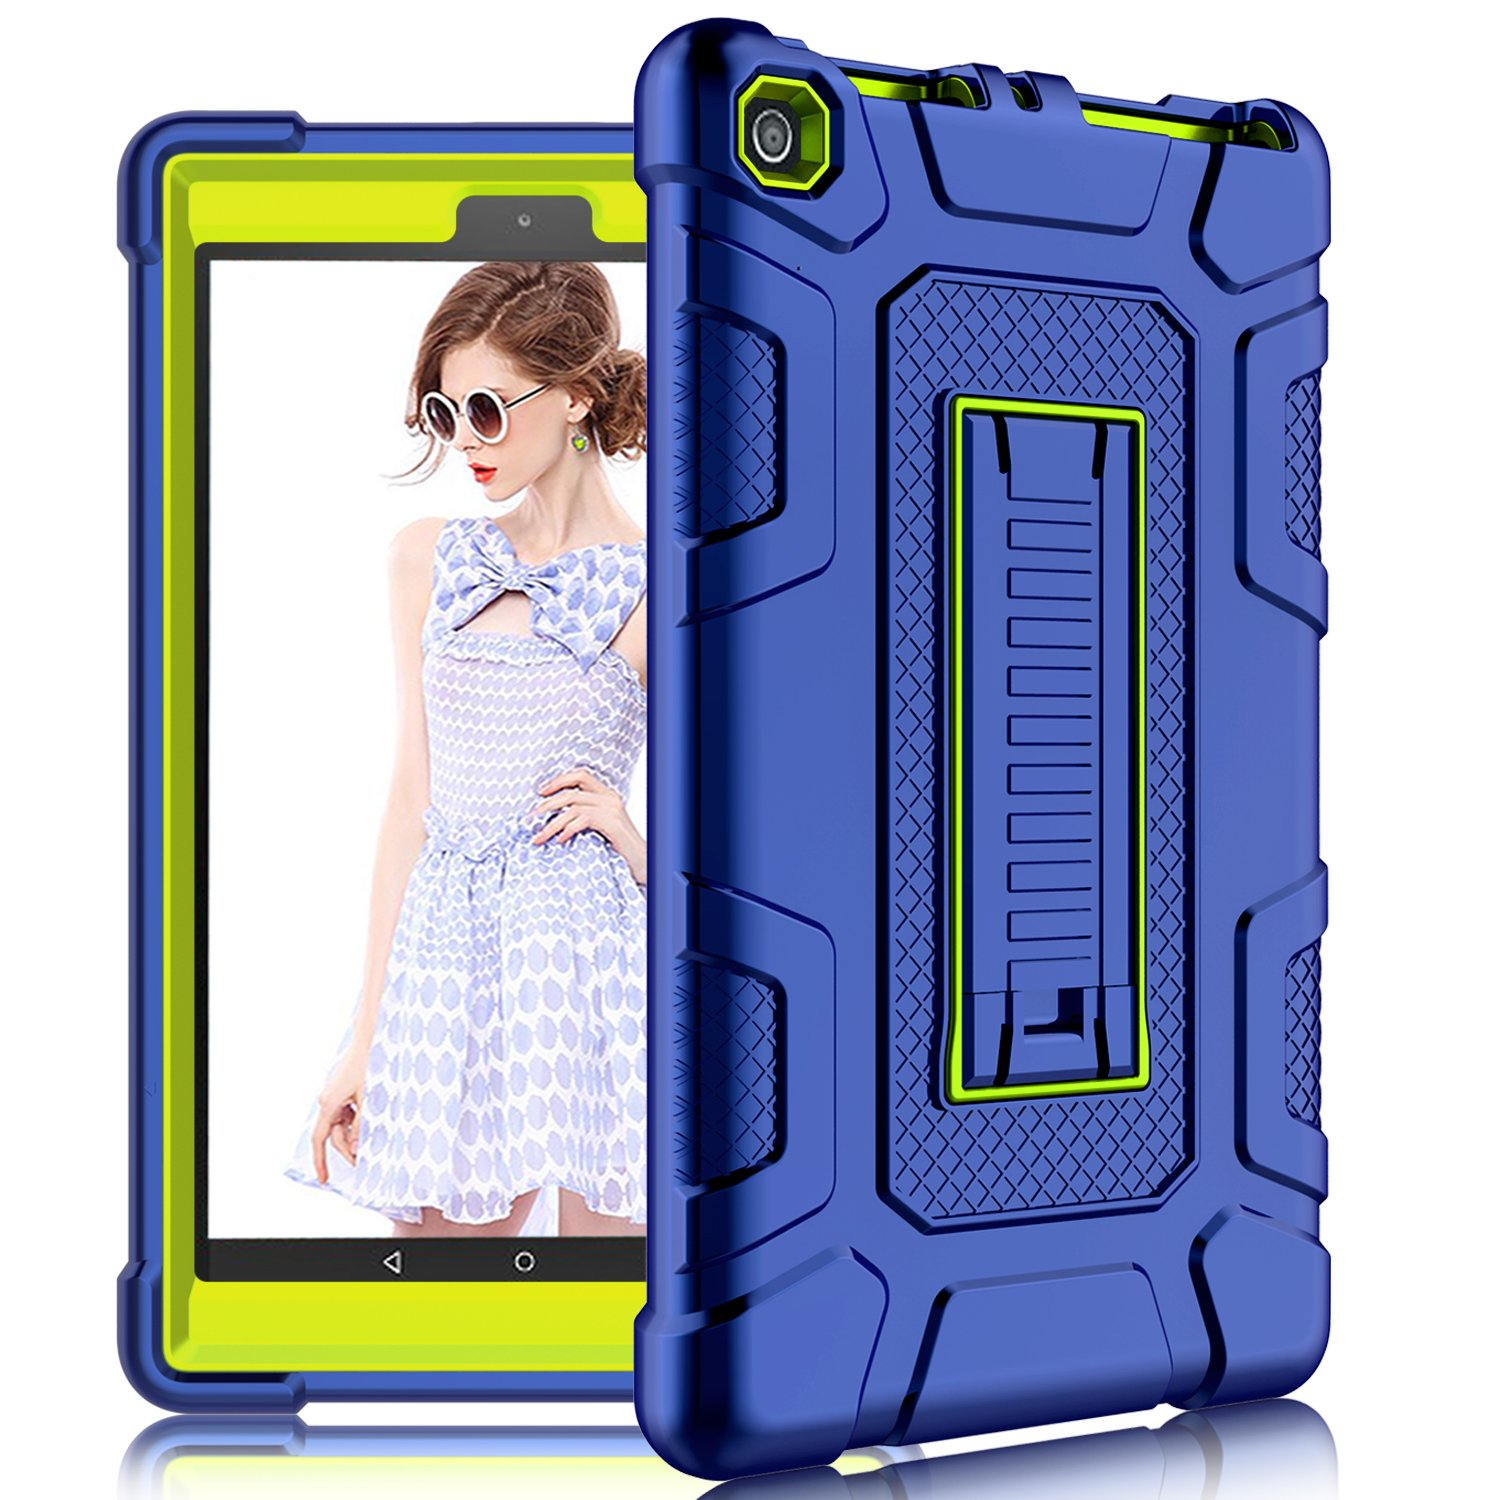 DONWELL Fire 8 2017 Case New Hybrid Shockproof Defender Protective Armor Cover with Kickstand for Amazon Kindle Fire 8 2017/All-New Amazon Fire HD 8 (Navy Blue/Lemon Yellow)